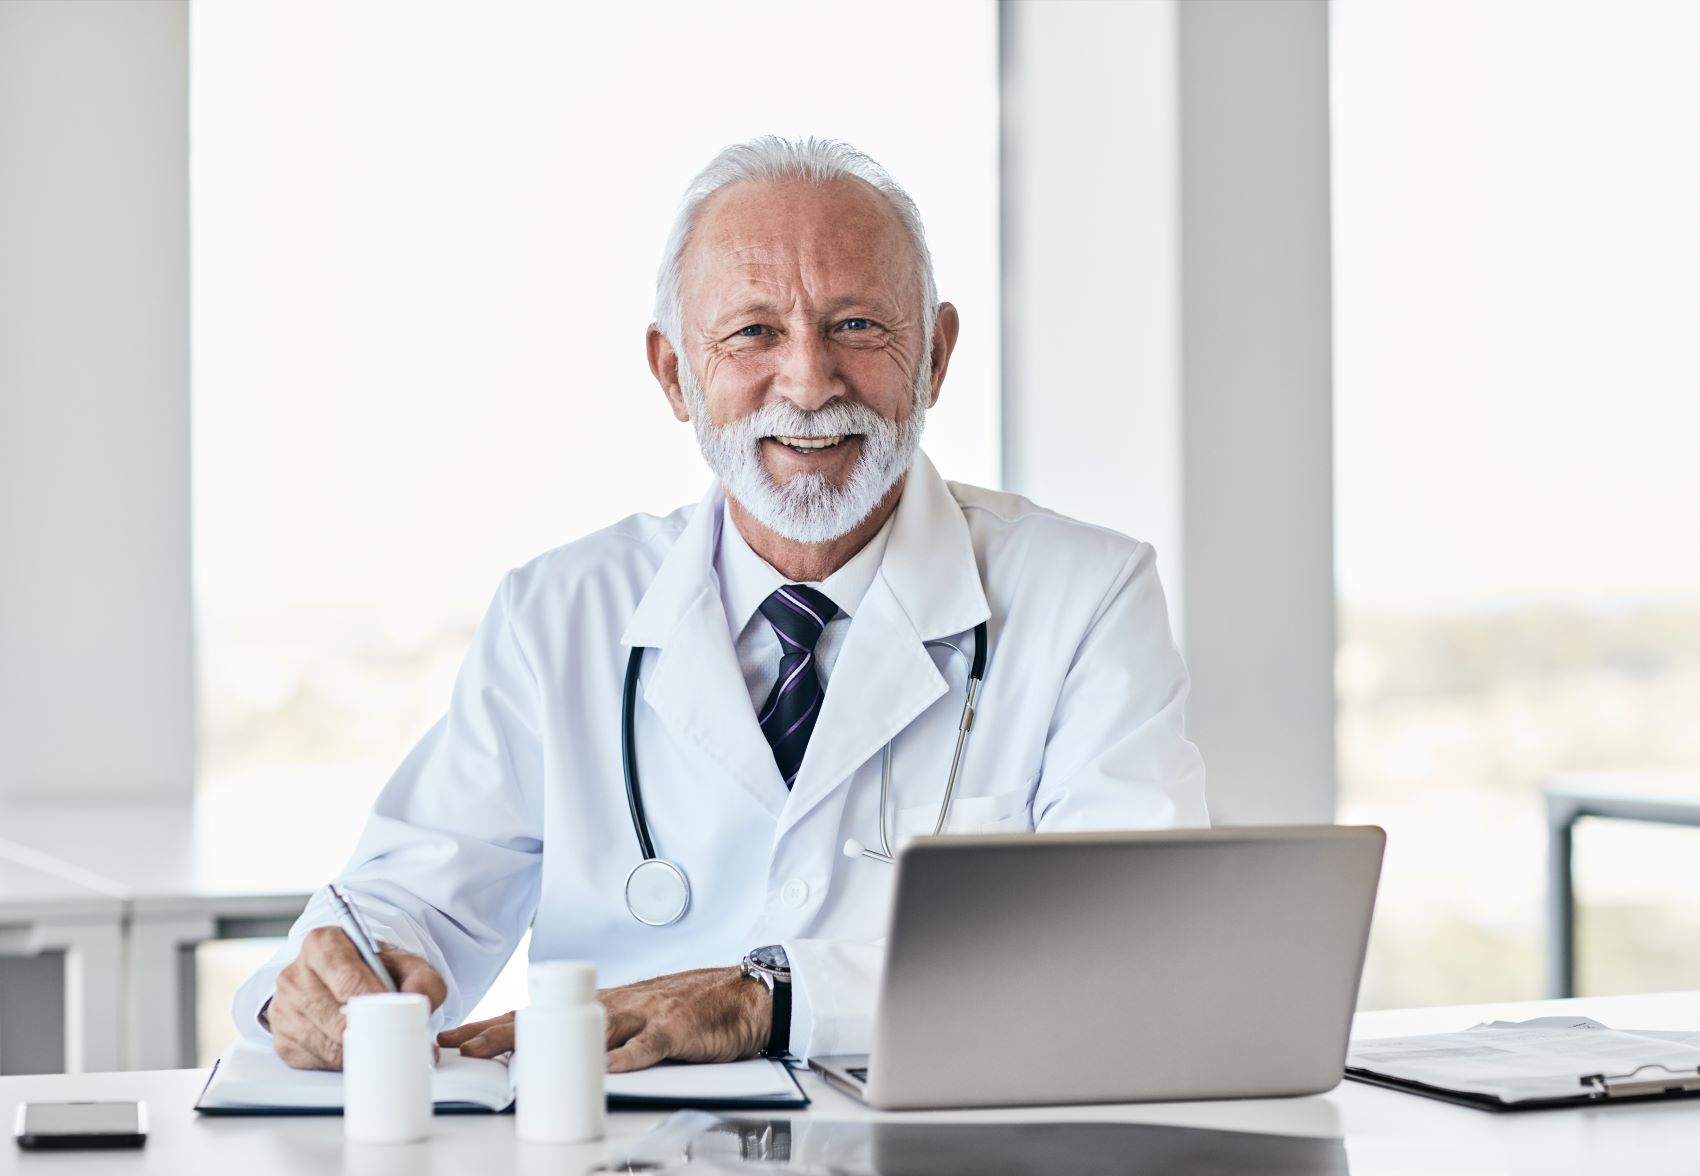 Older doctor is satisfied to the care coordination platform and reports